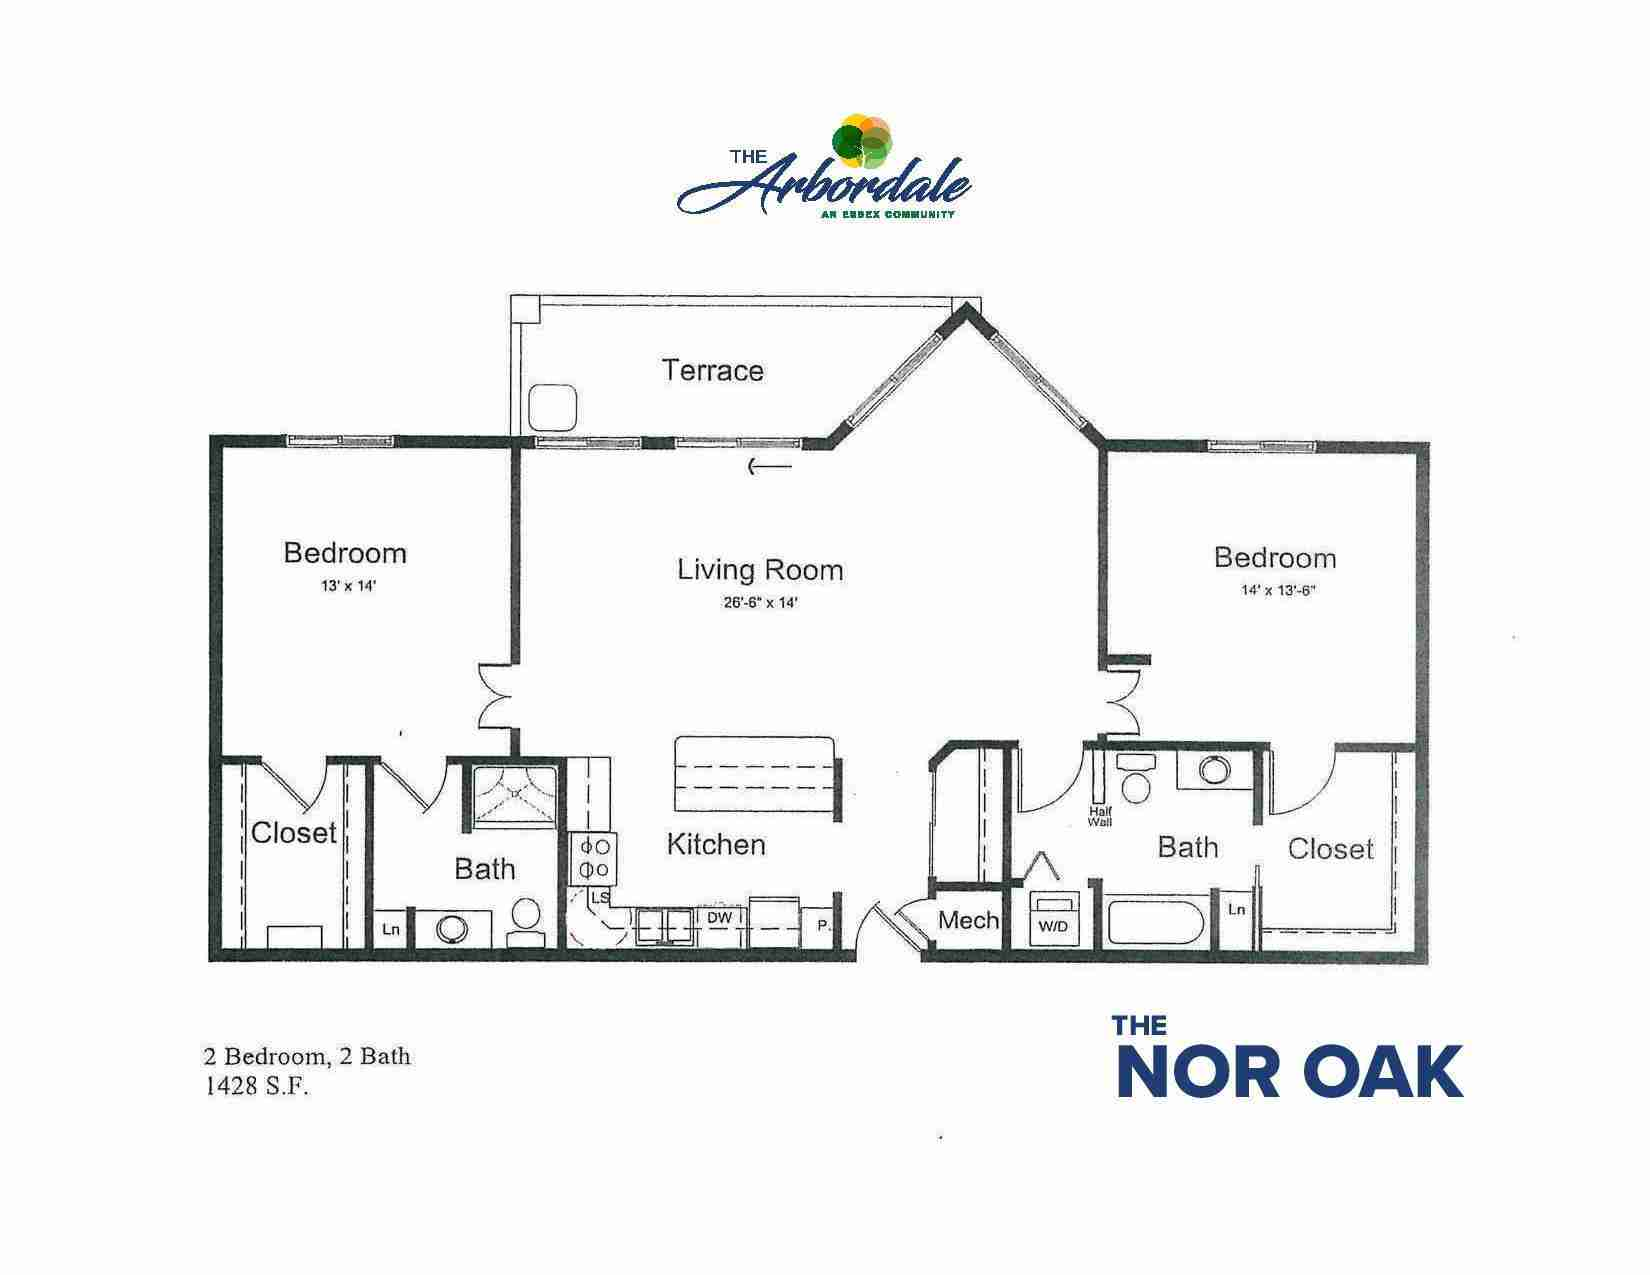 the nor oak floor plan, 2 bedroom, 2 bath, 1428 sq ft